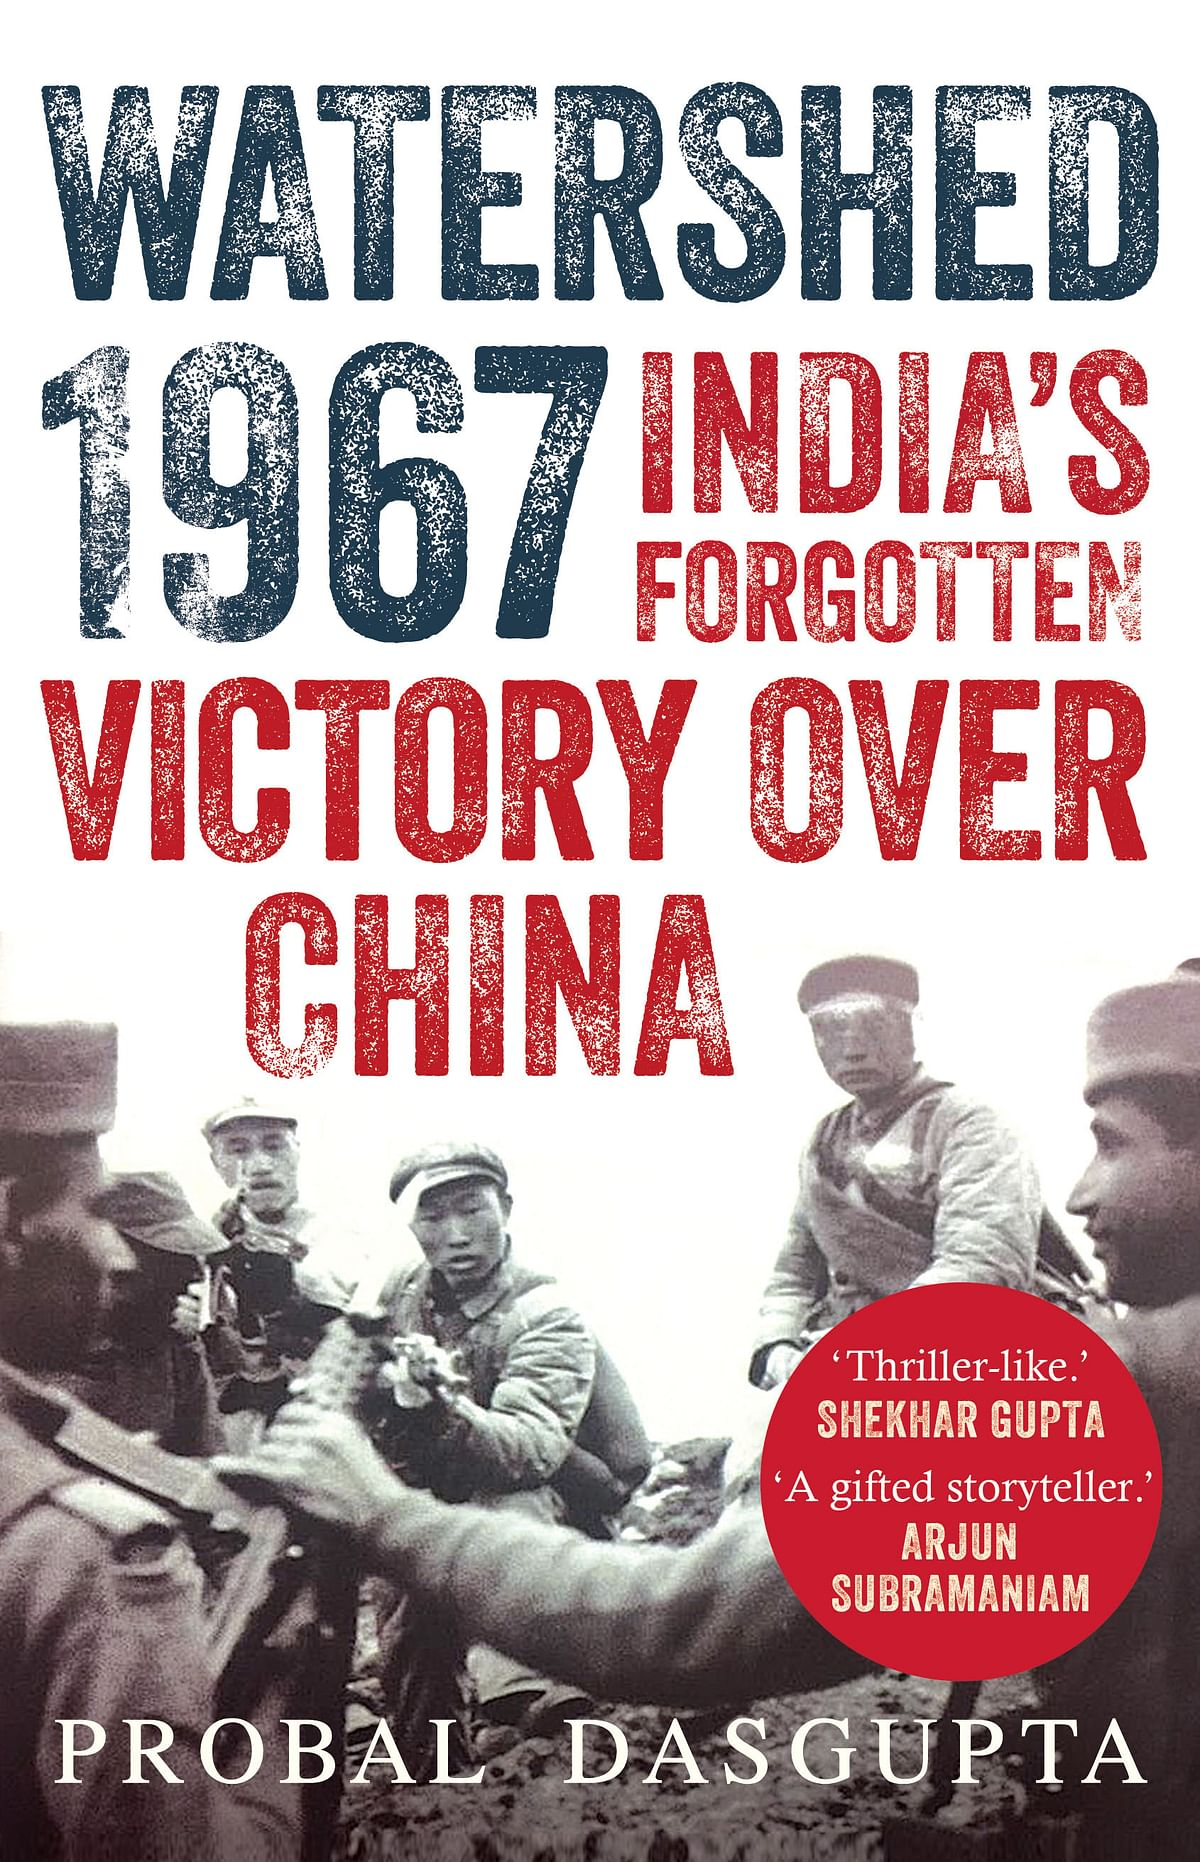 Image of Probal DasGupta's new book's cover, published by Juggernaut.